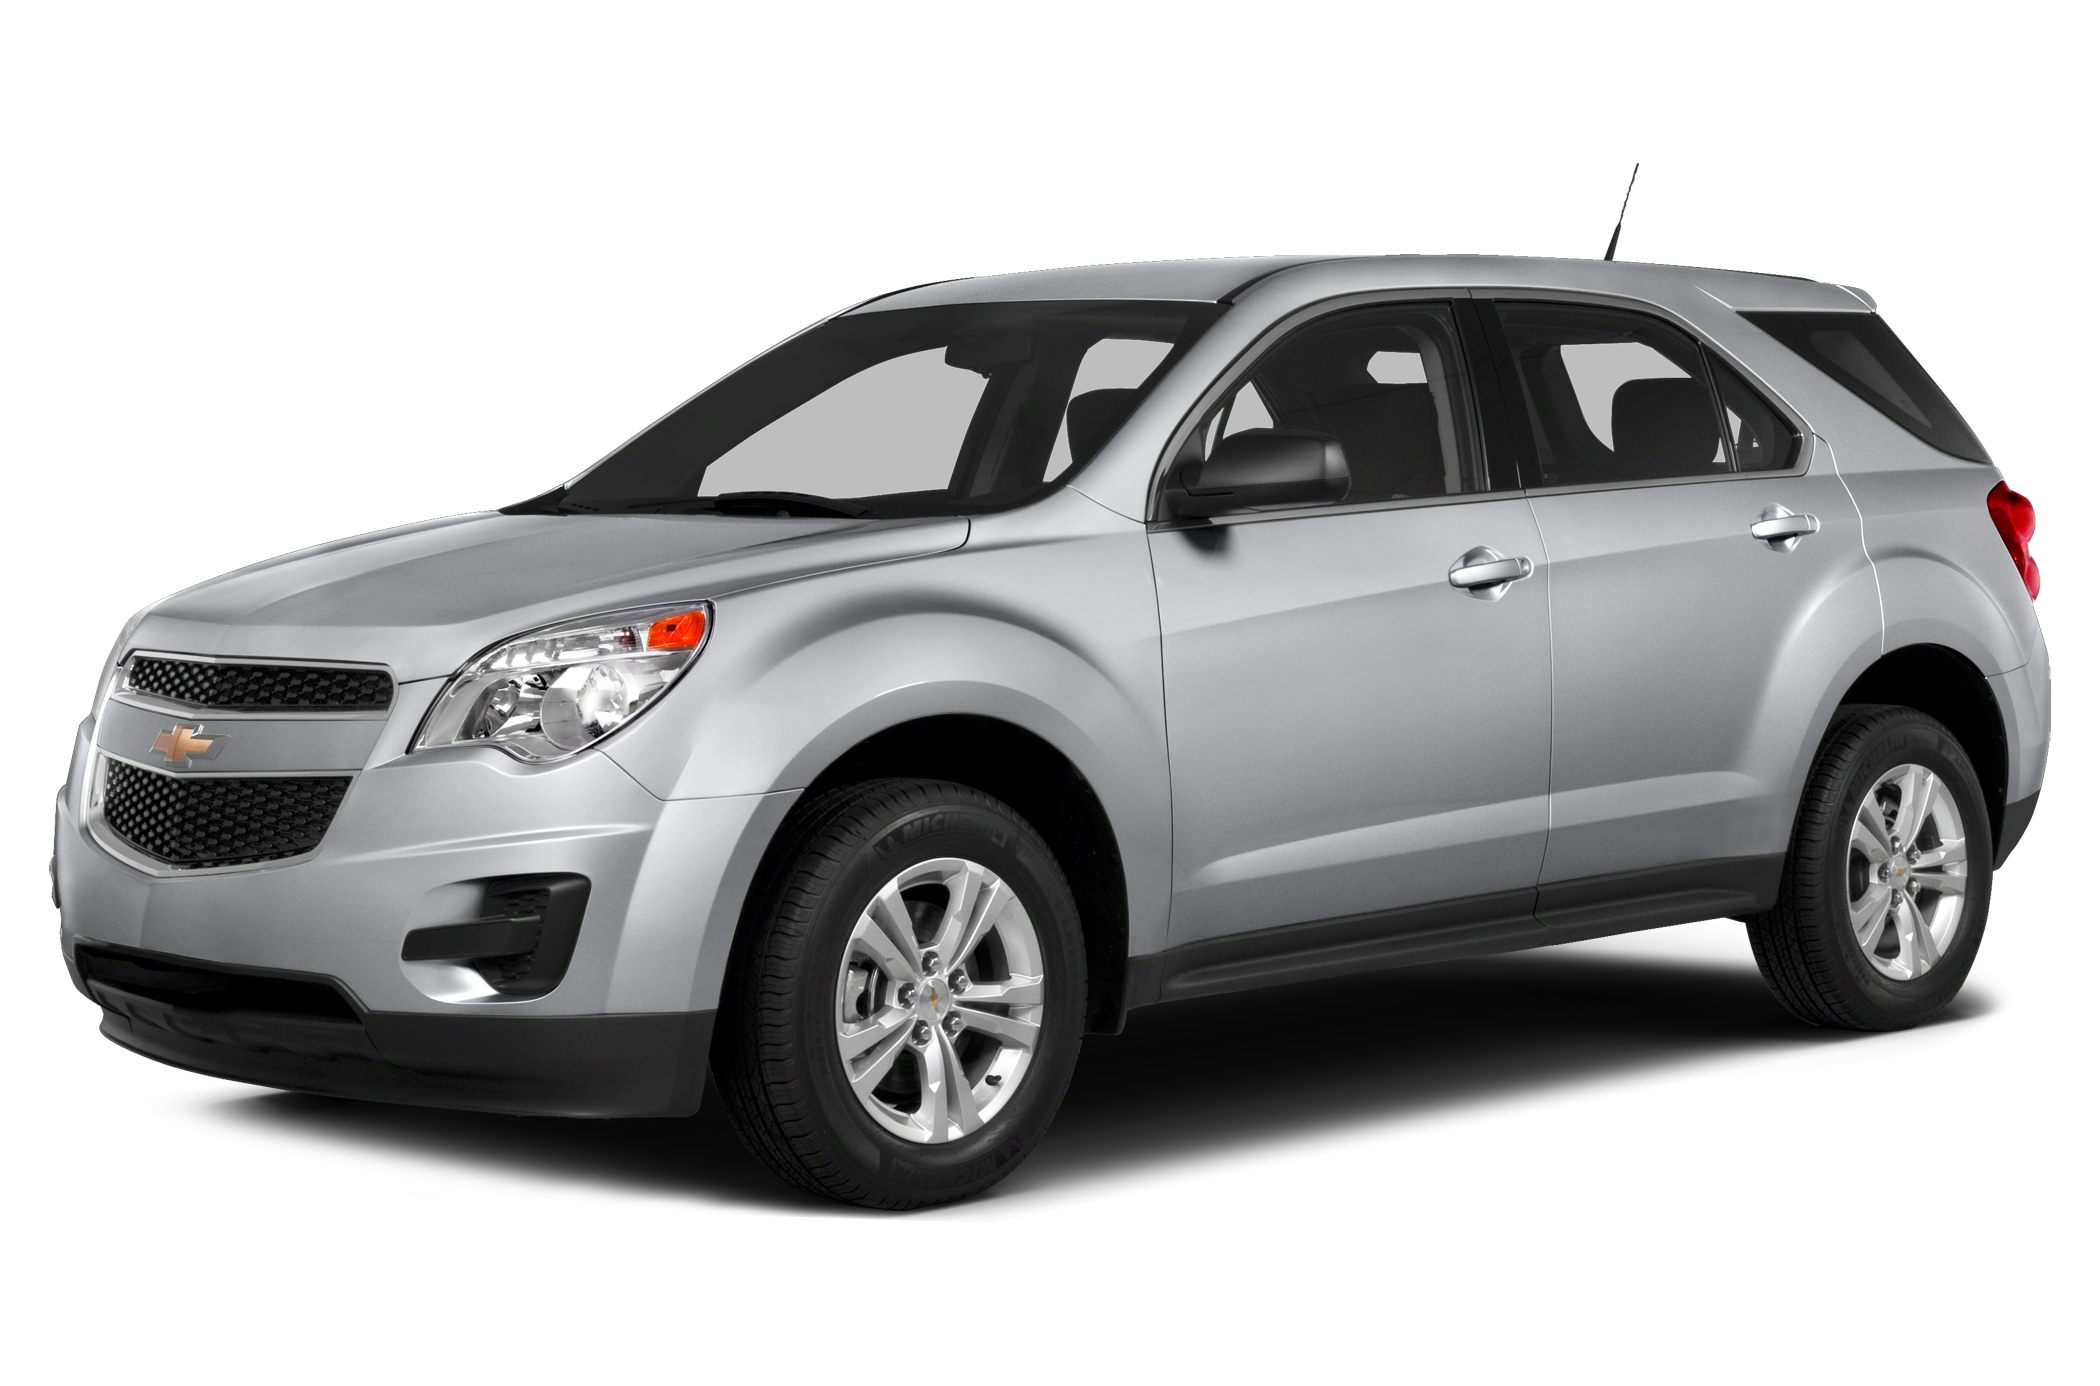 2015 Chevrolet Equinox LS SUV for sale in Westfield for $27,145 with 0 miles